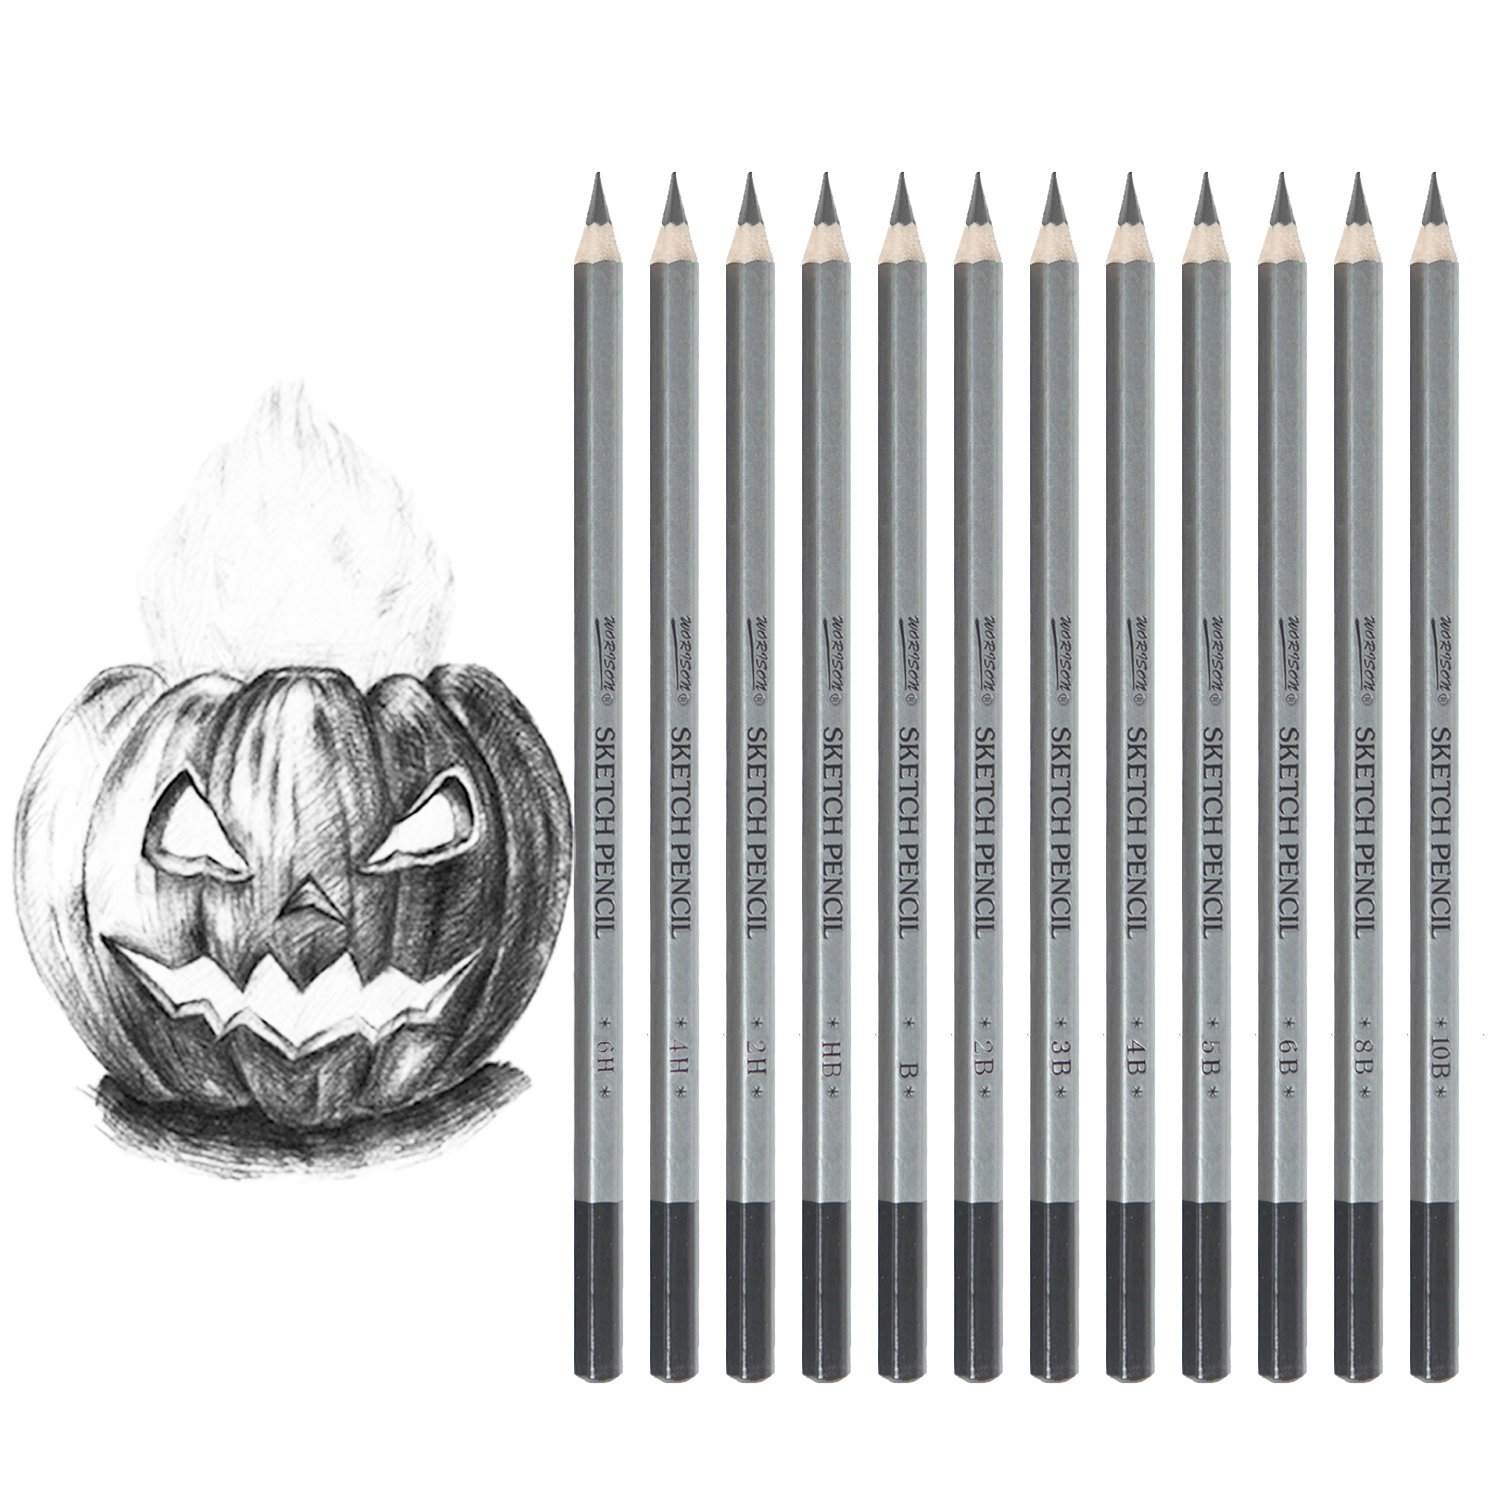 Get quotations · dyvicl drawing pencils set 12 pieces sketching pencils 10b 8b 6b 5b